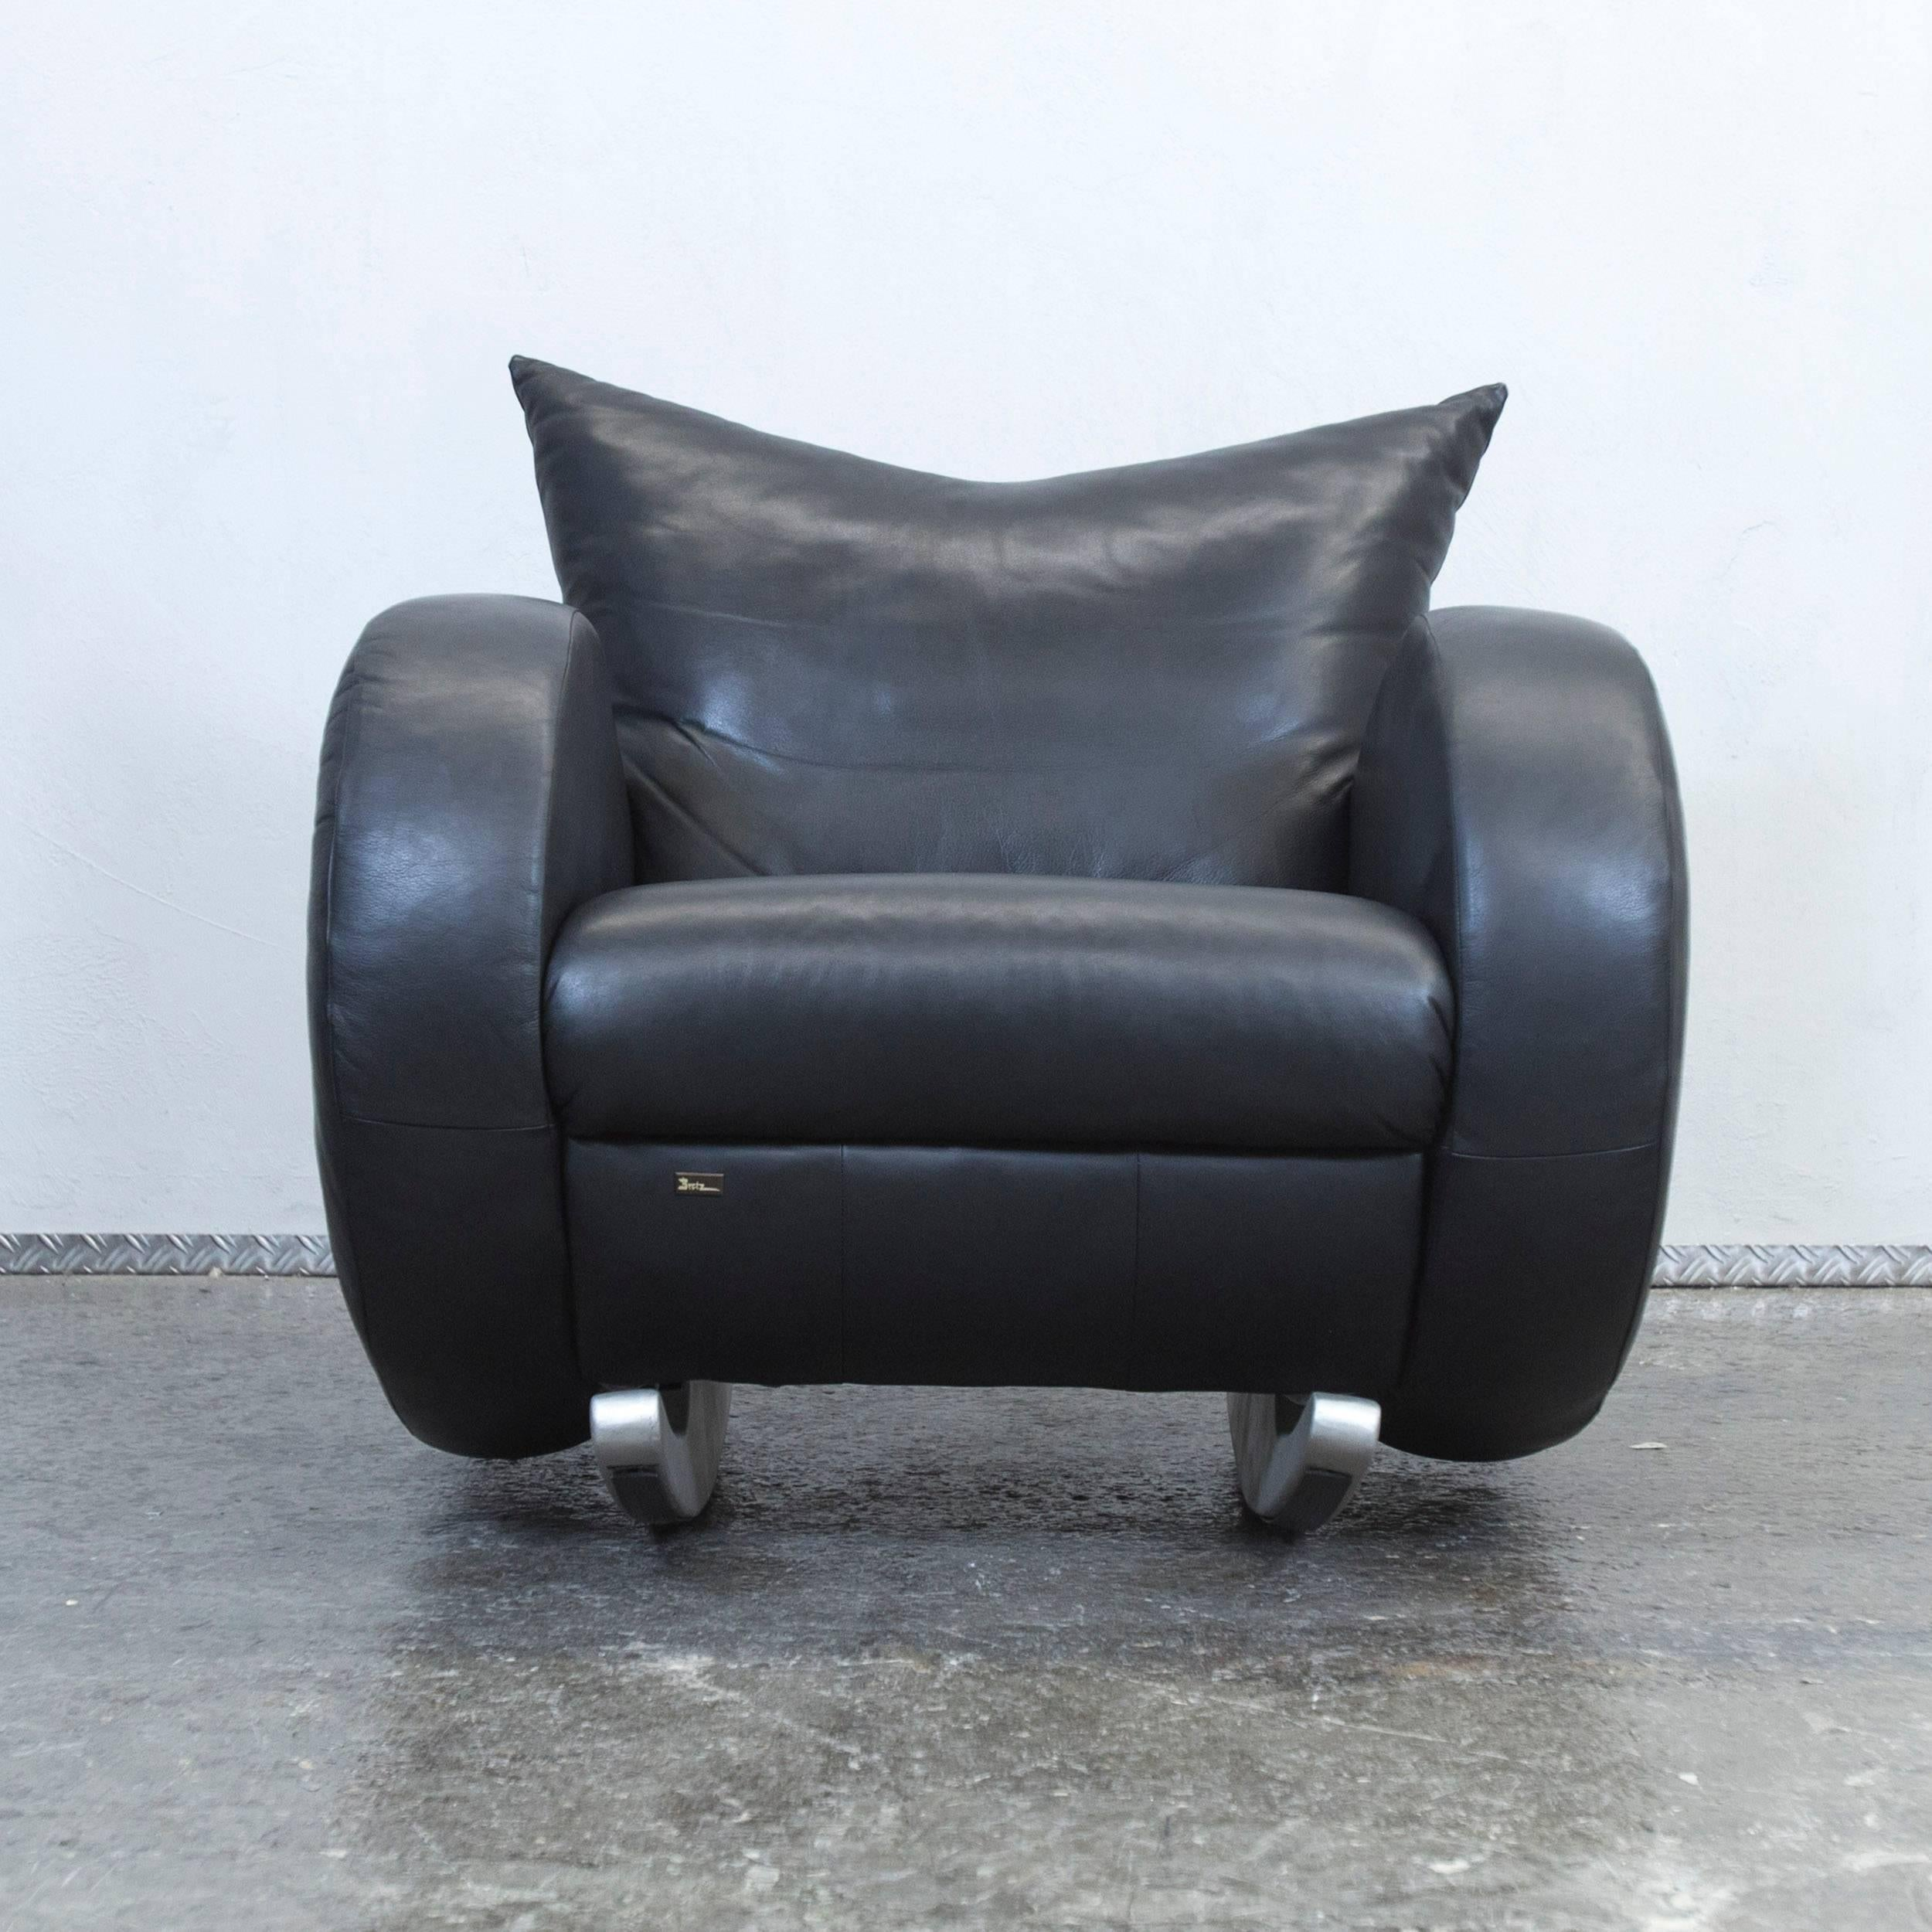 Black Colored Original Bretz Designer Leather Rocking Chair In A Modern And  Minimalistic Style, Designed